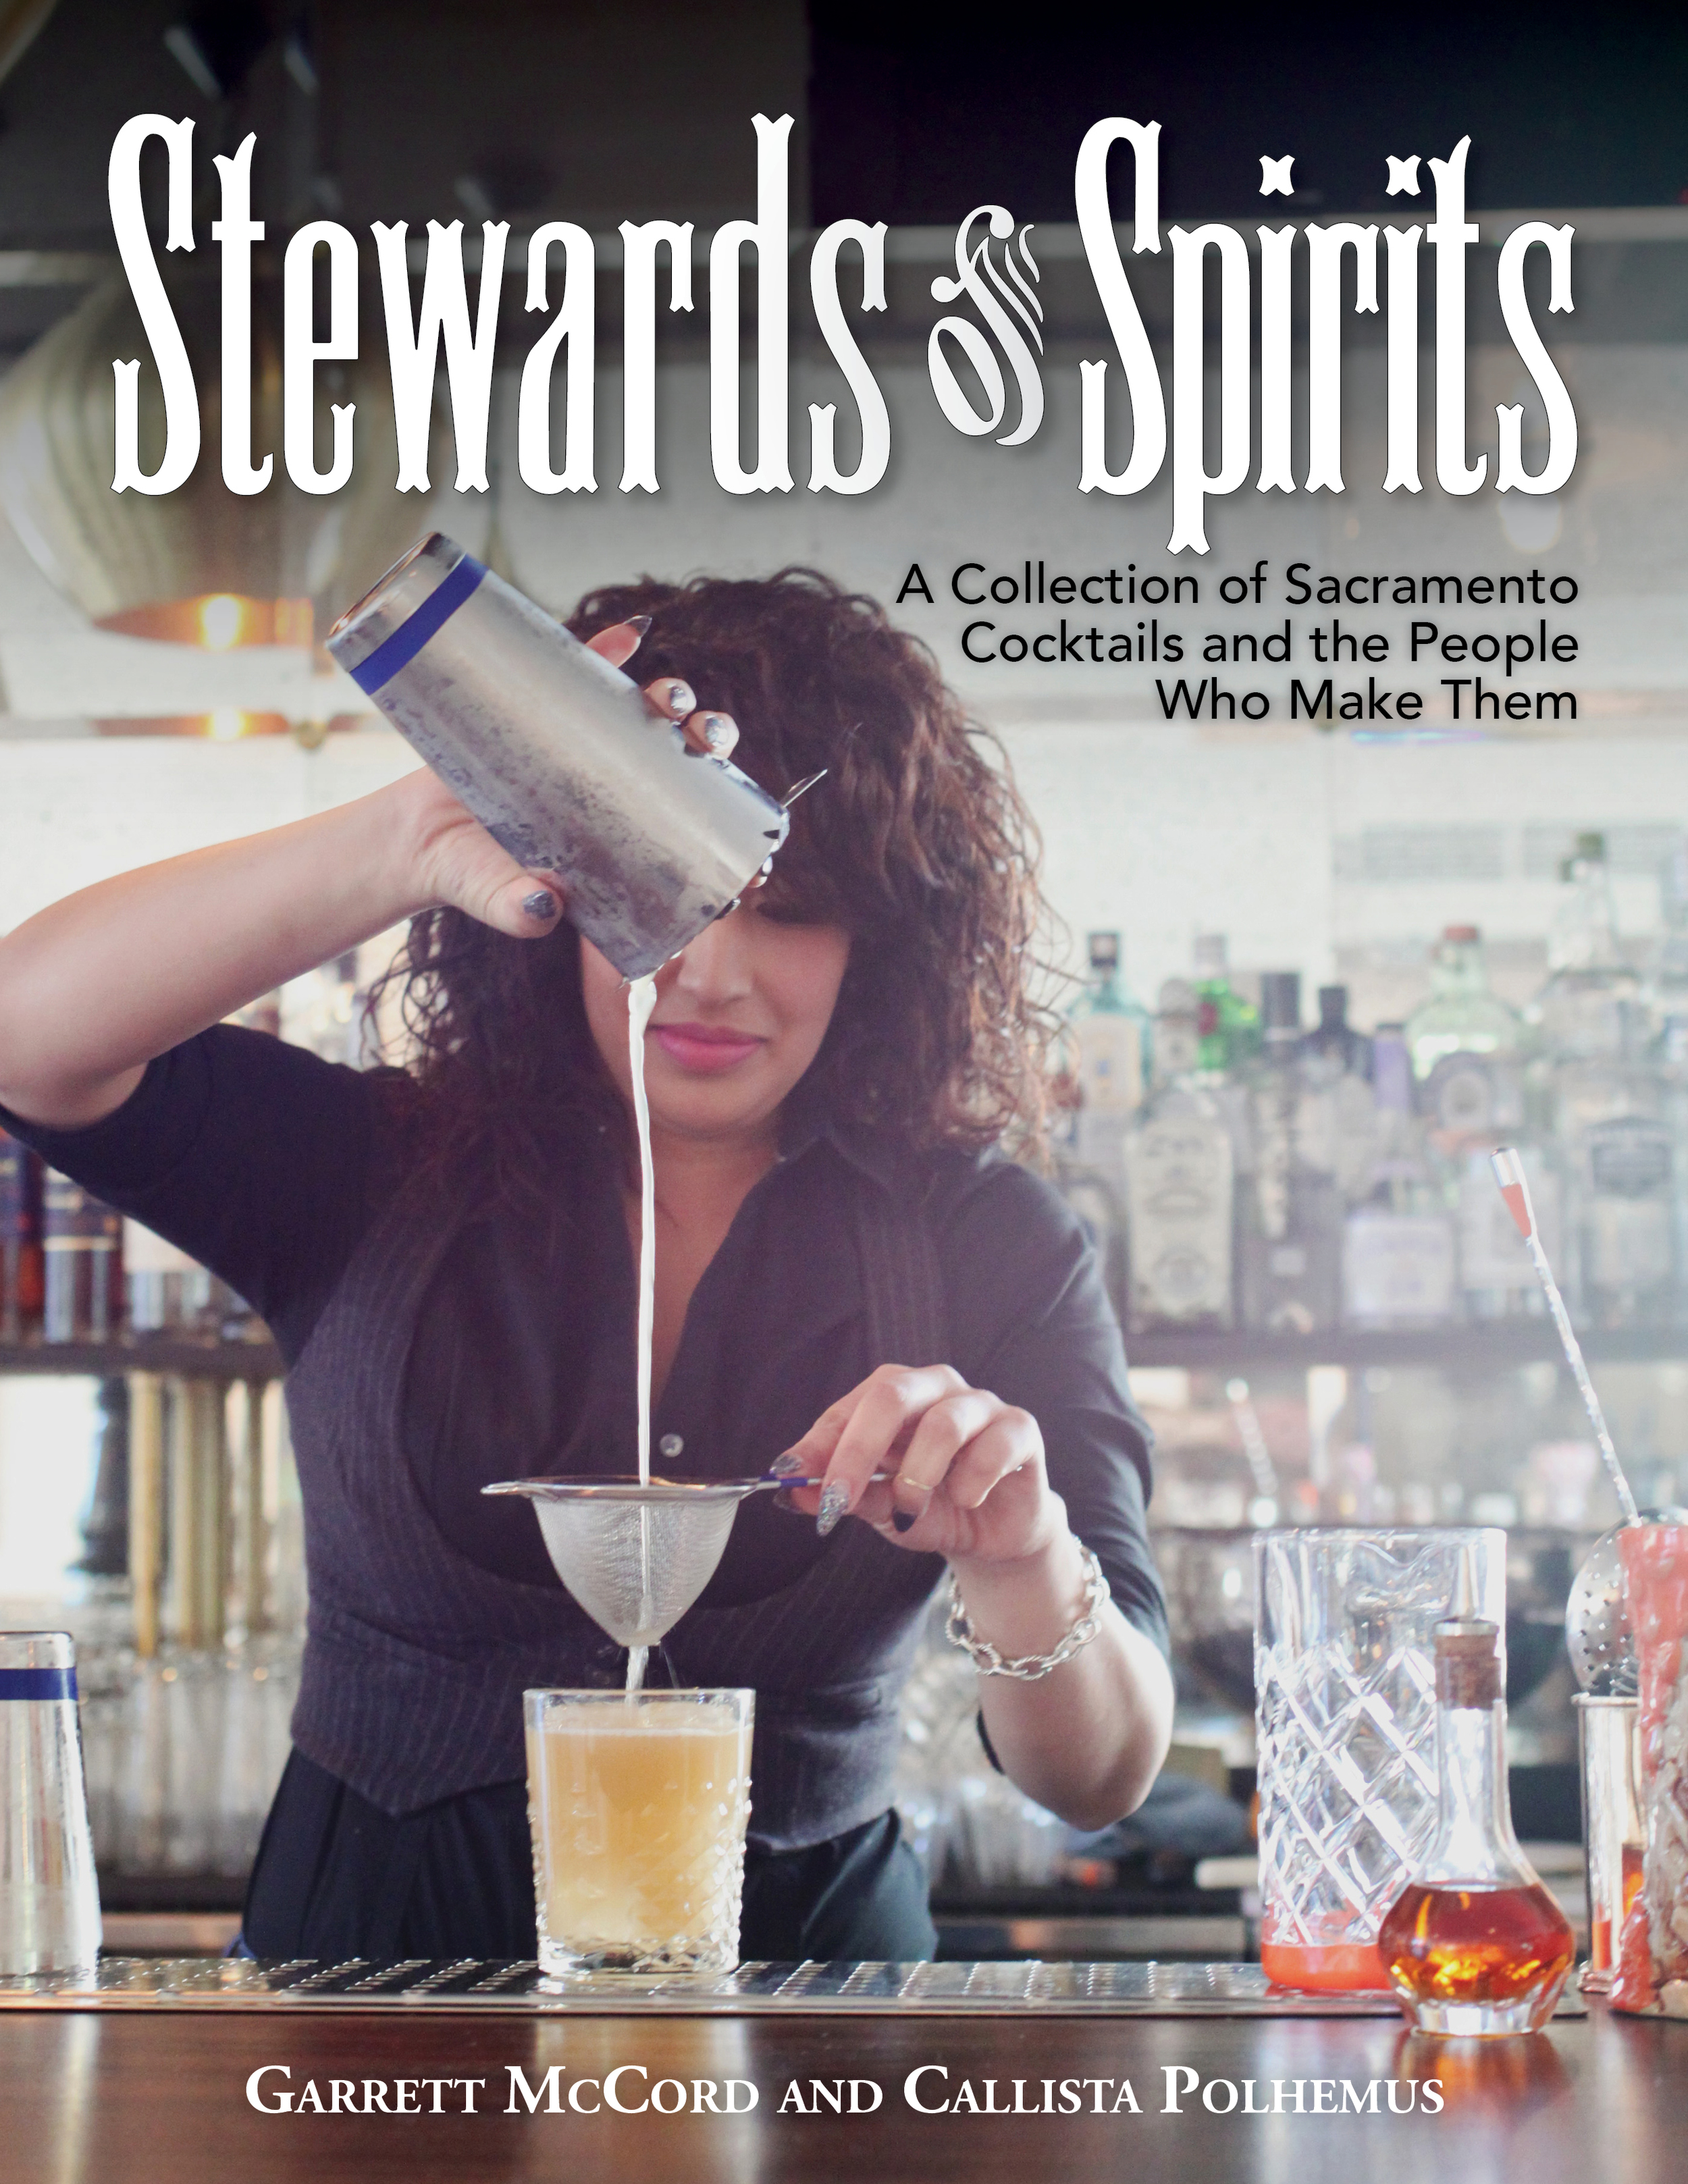 Download my e-cookbook, Stewards of Spirits!